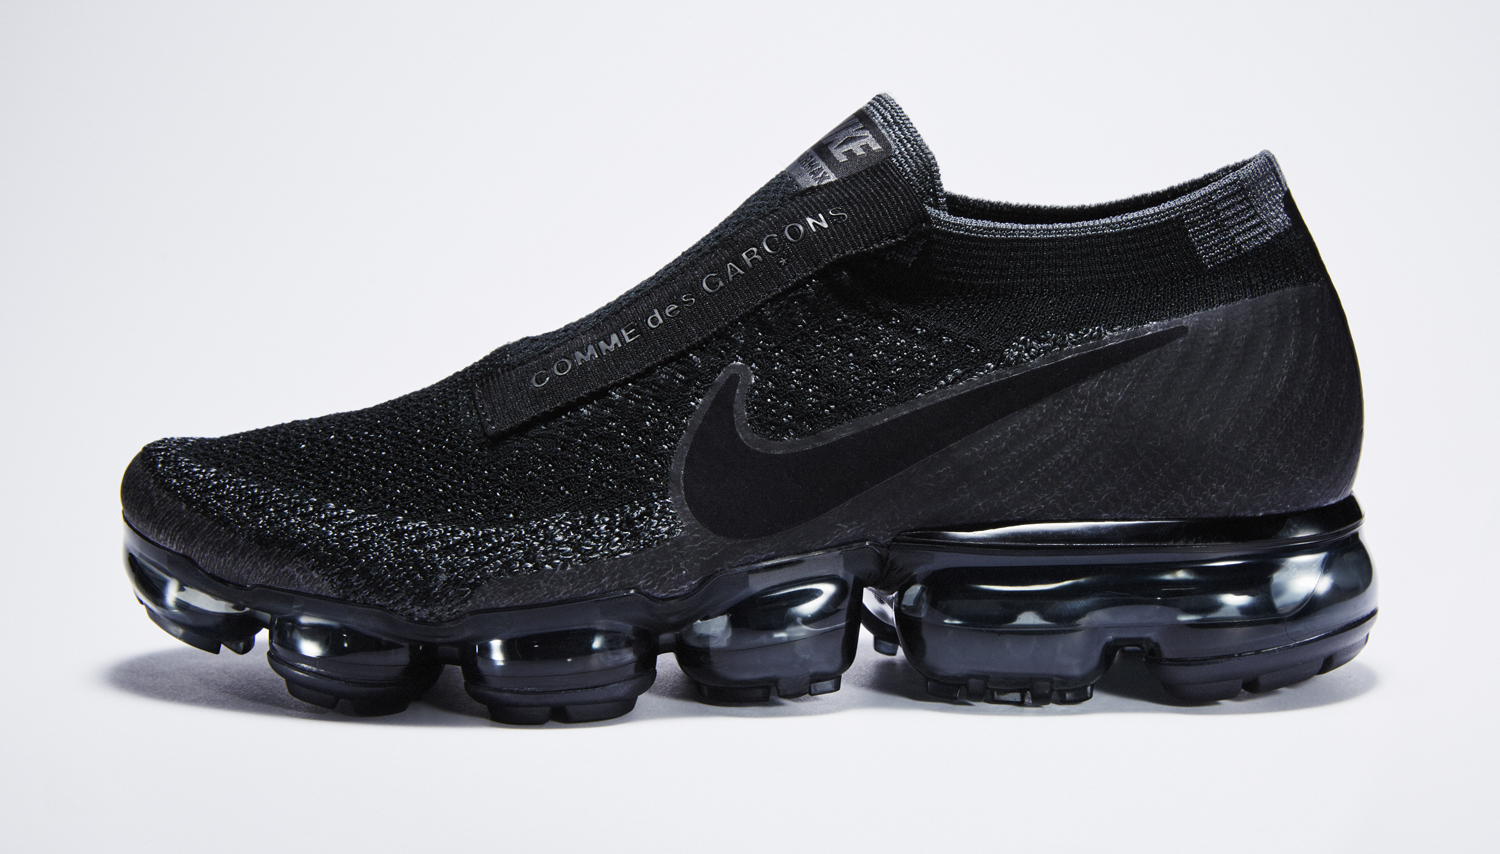 Image via Nike Black Nike Air VaporMax Comme des Garcons Profile